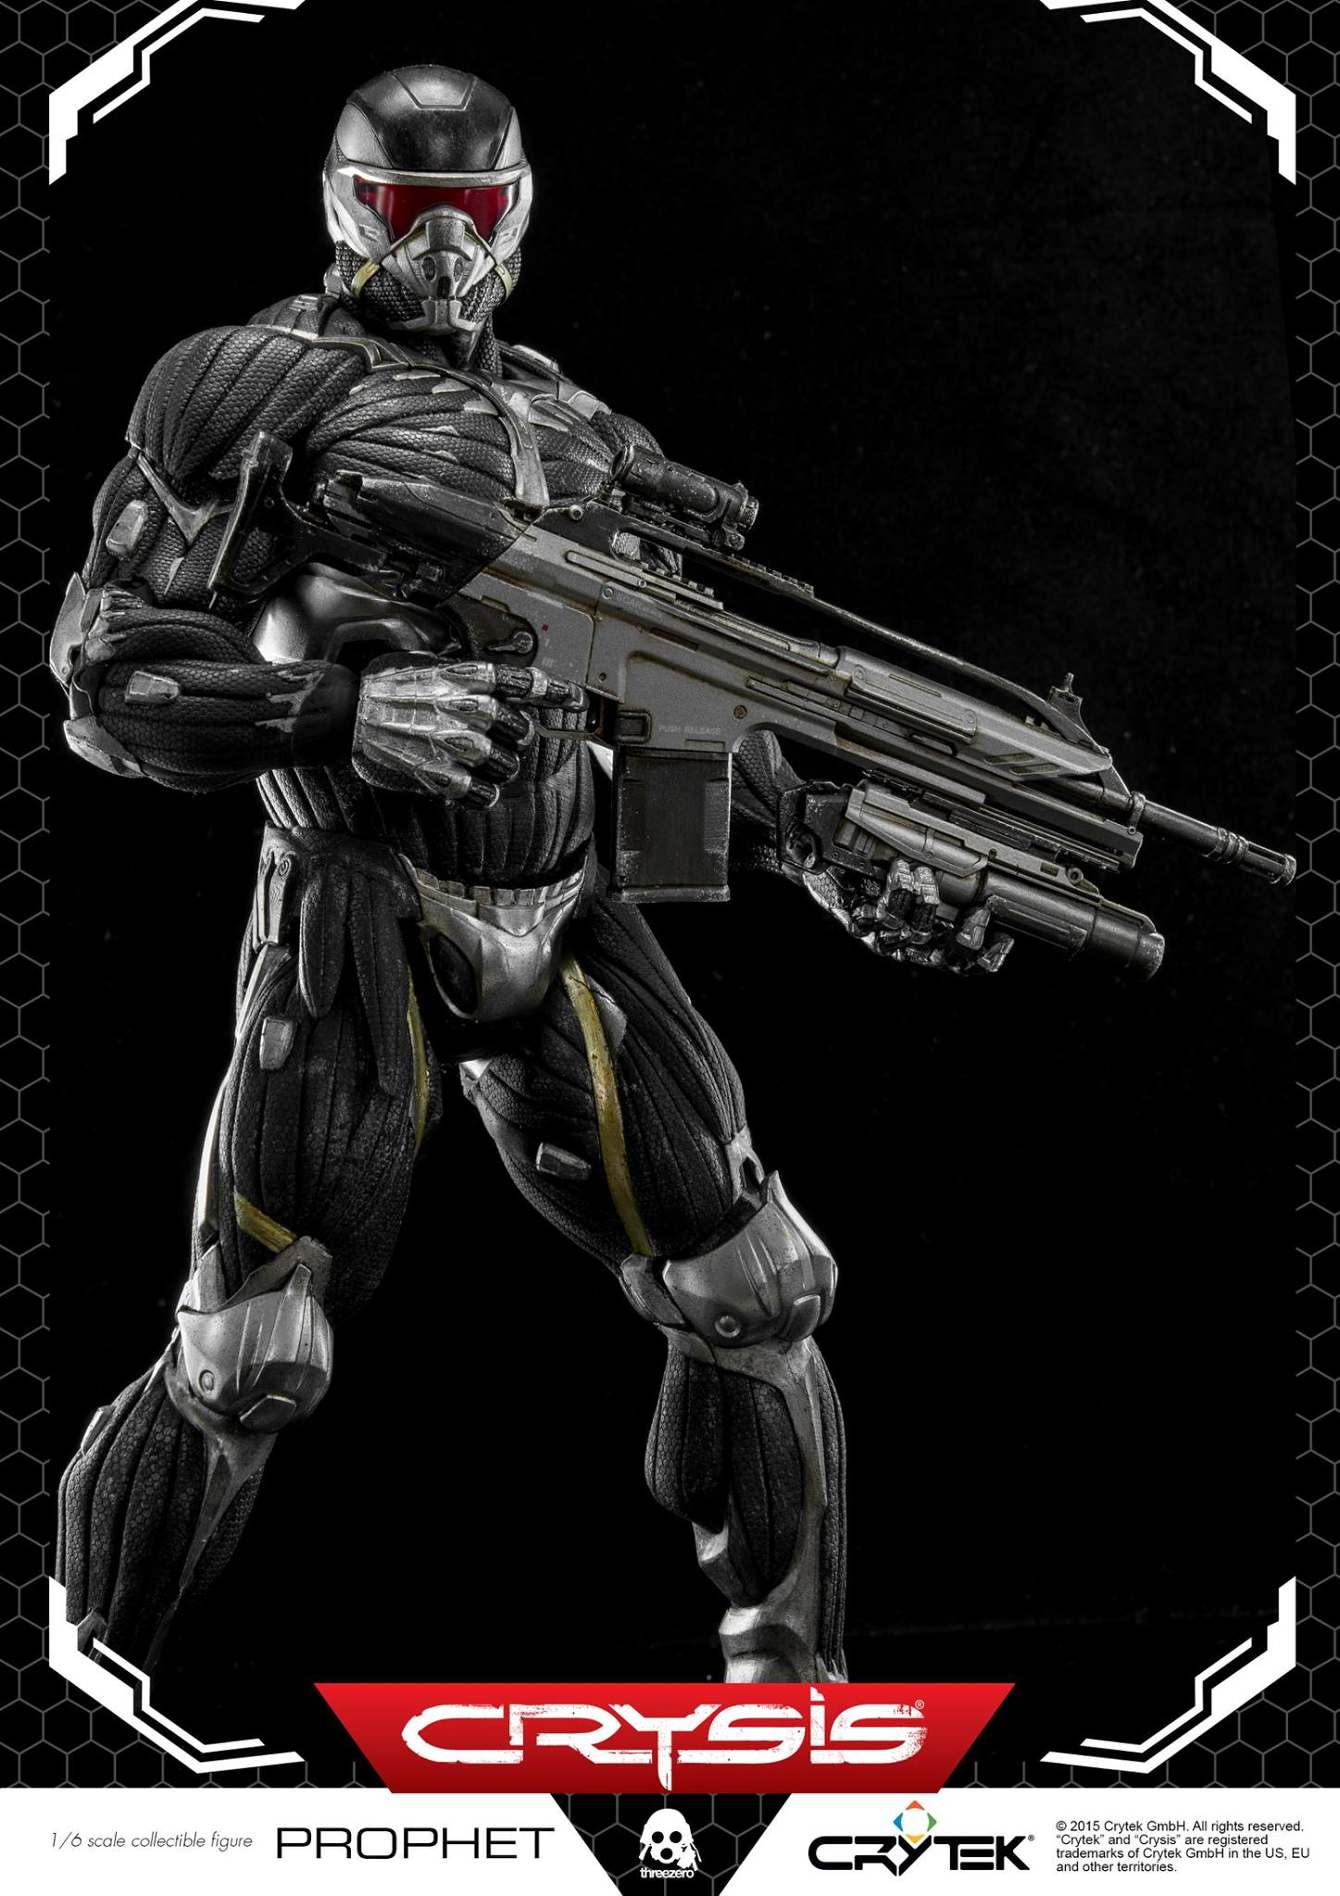 ThreeZero-Crysis-video-game-Prophet-CRY11_1340_c.jpg